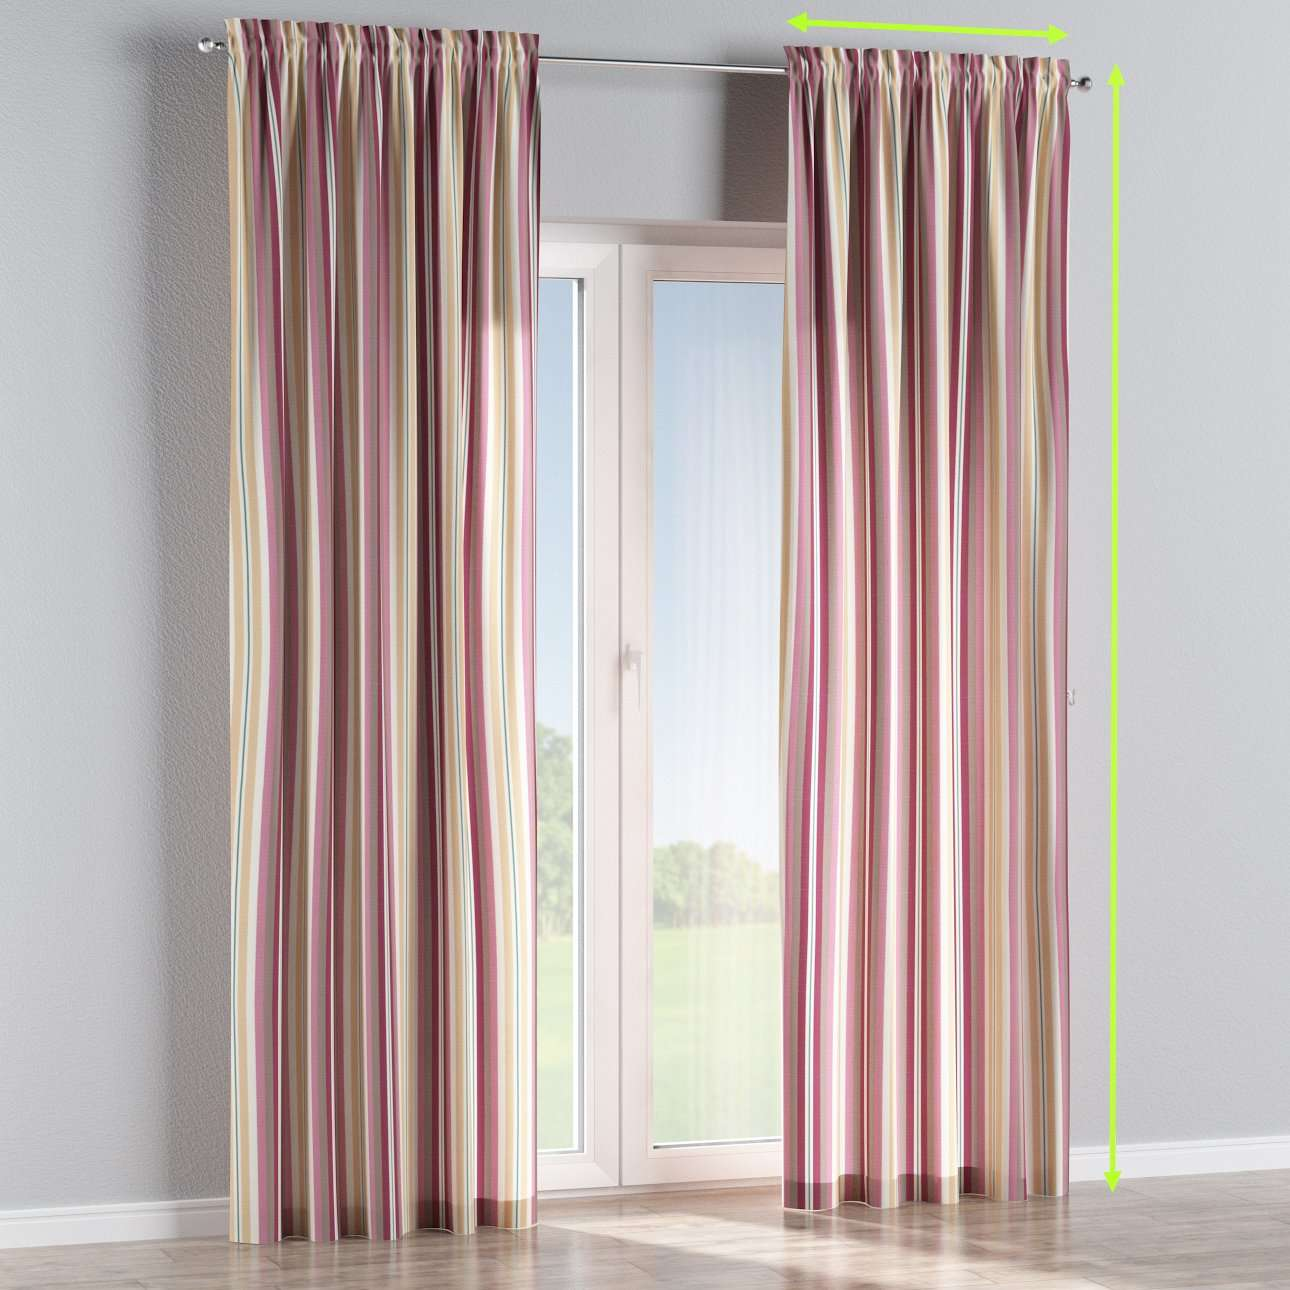 Slot and frill lined curtains in collection Mirella, fabric: 141-14